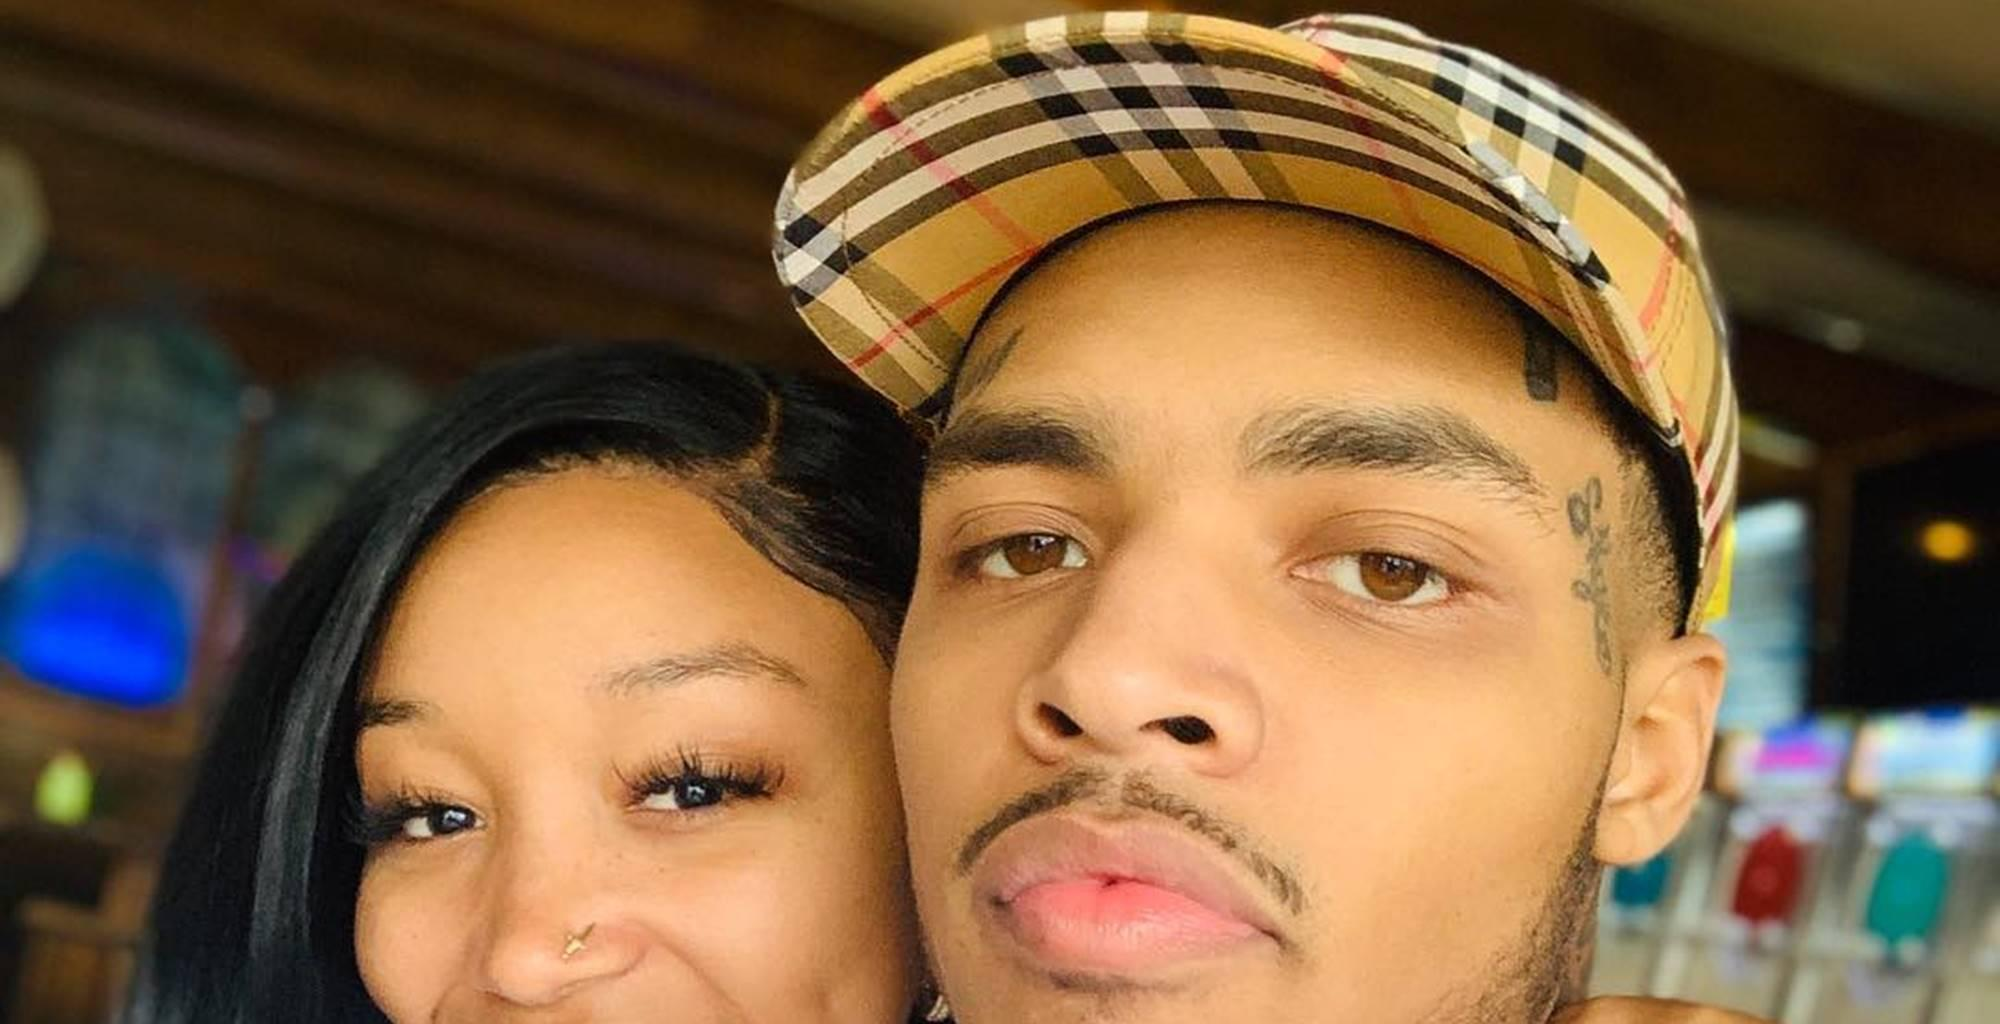 Tiny Harris' Daughter Zonnique Pullins Celebrates The Birthday Of Her BF, Bandhunta Izzy With An Emotional Message And Gorgeous Pics